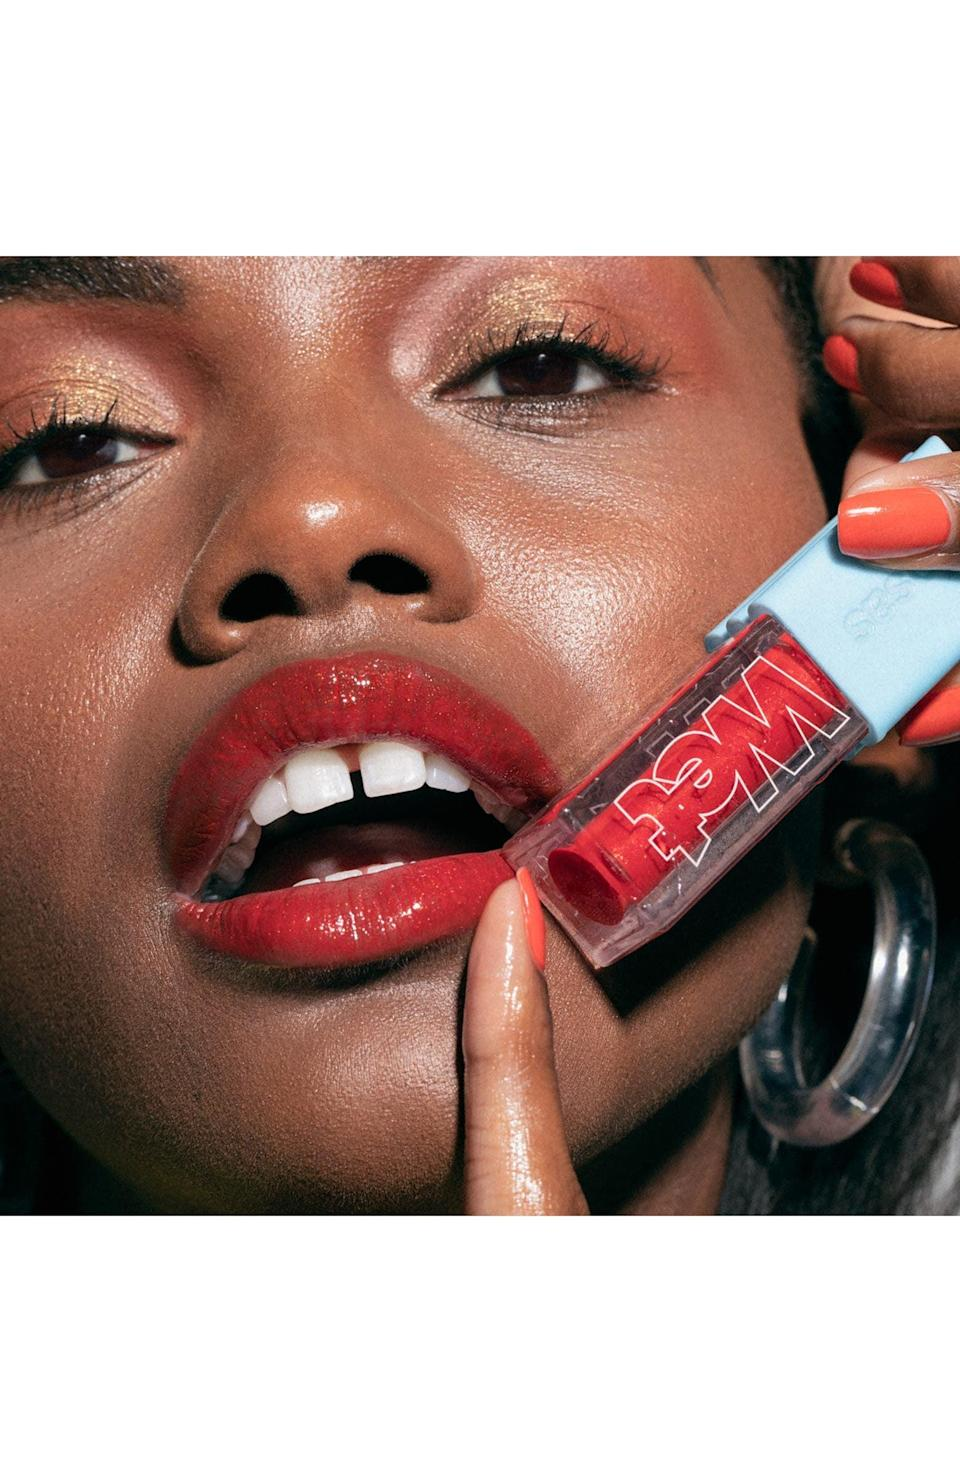 <p>If you're all about that glossy lip, the <span>Kosas Wet Lip Oil Gloss</span> ($22) is a moisturizing, high-shine find that will be your new go-to. It's got peptides and hydrators to plump your lips while the high-color payoff is perfect for that bold lip.</p>